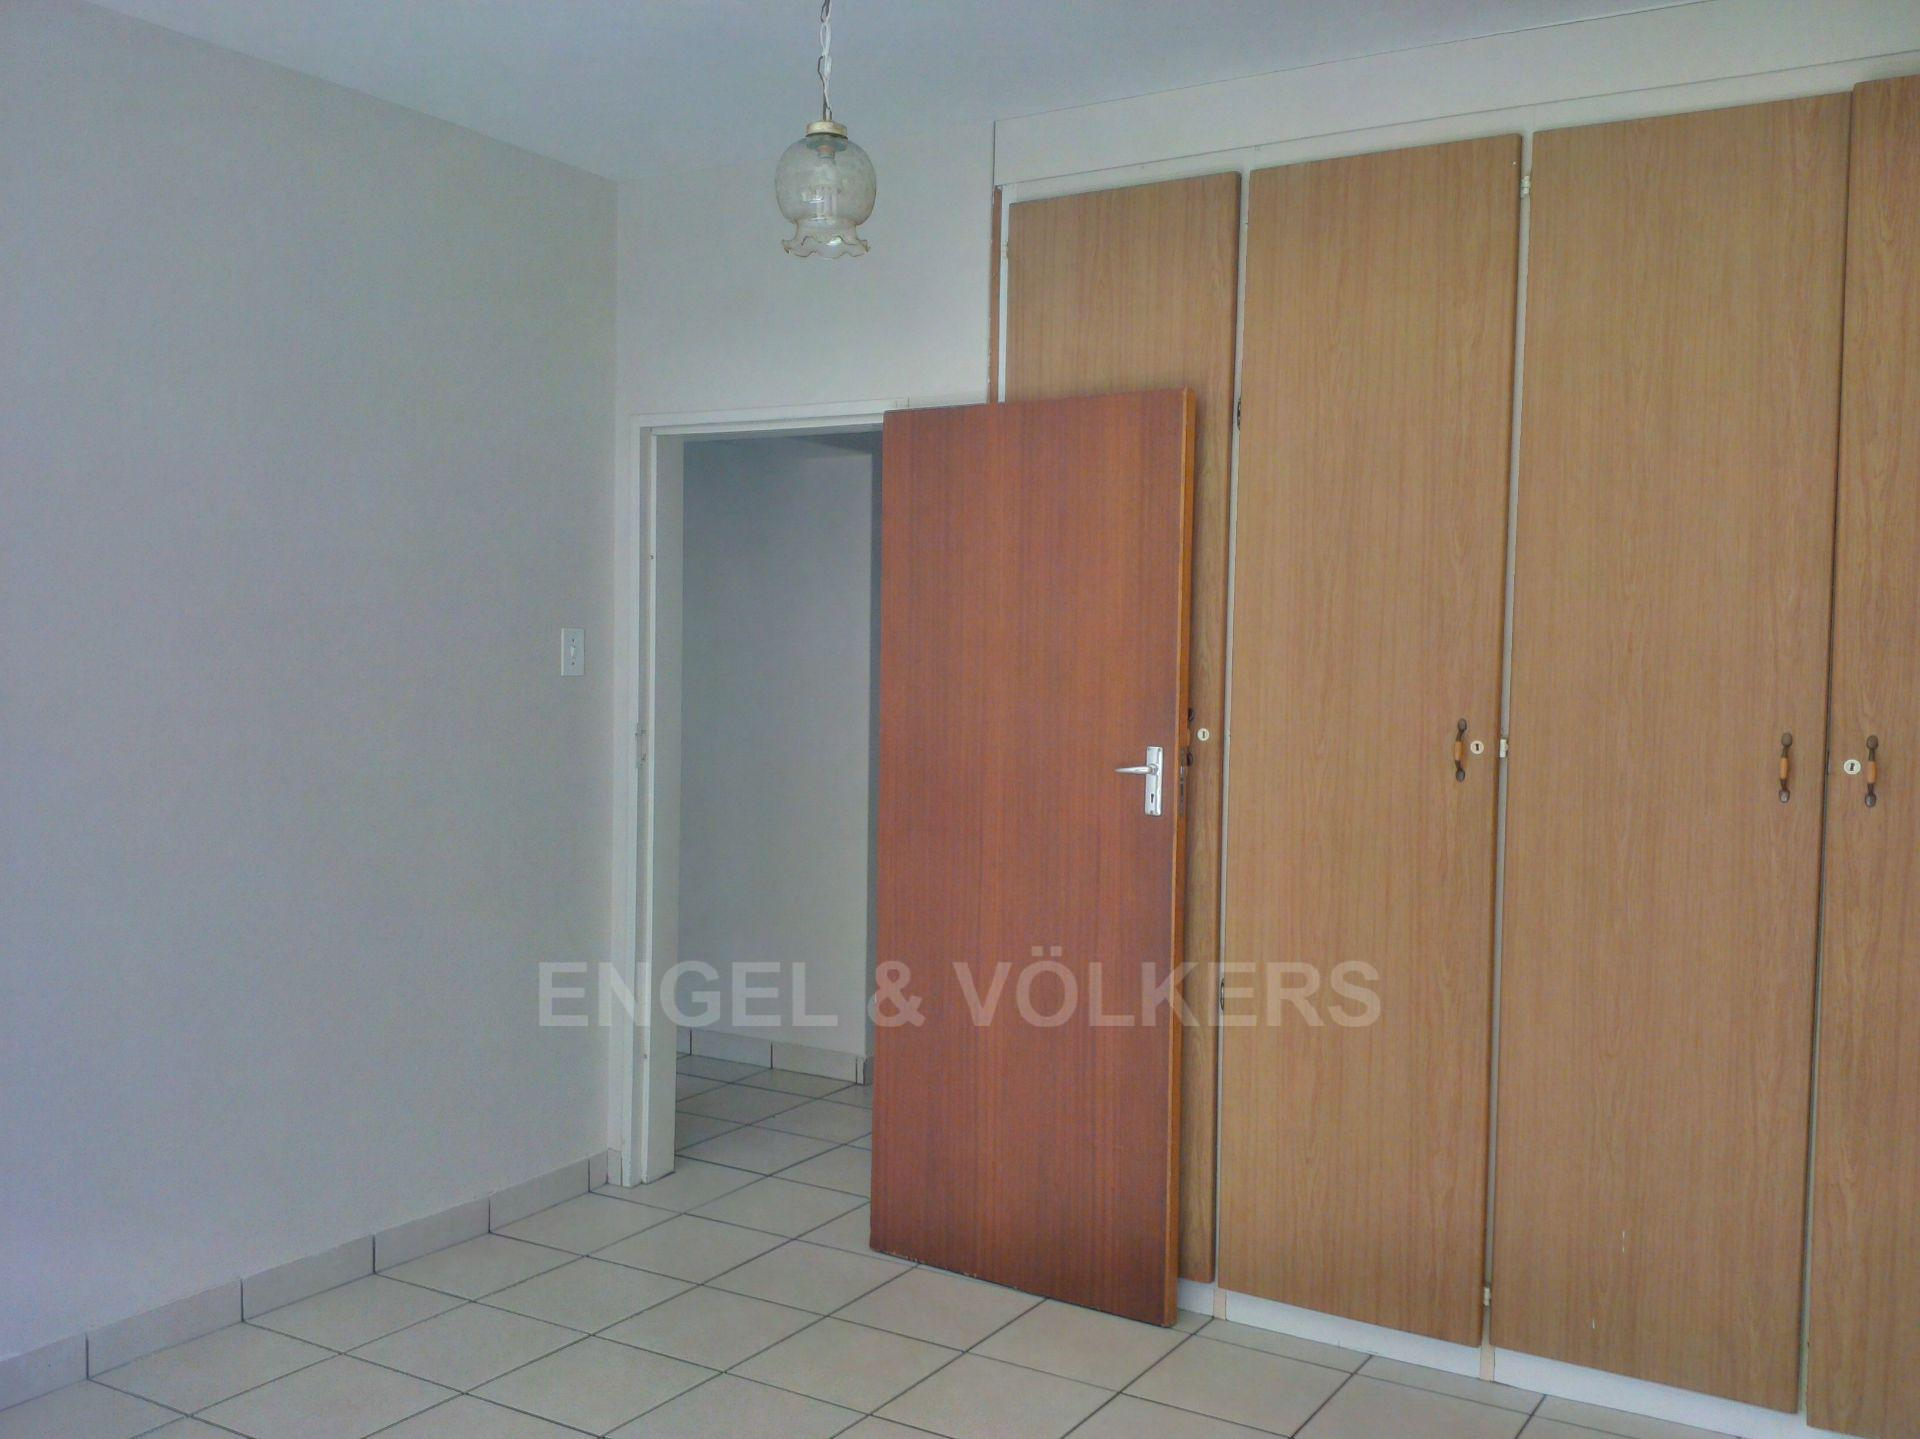 Potchefstroom Central property for sale. Ref No: 13549283. Picture no 20